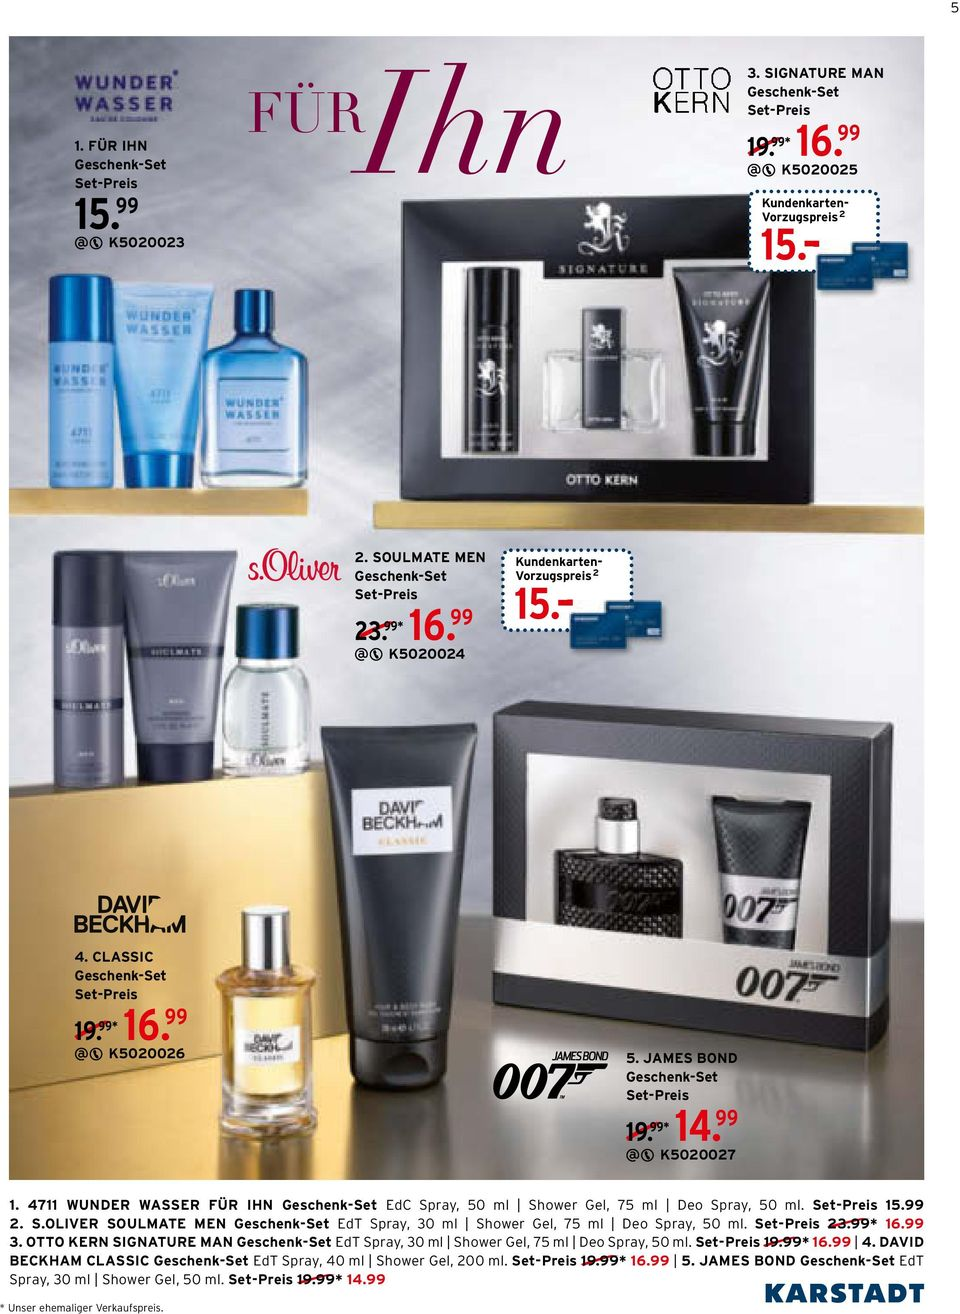 ray, 50 ml Shower Gel, 75 ml Deo Spray, 50 ml. 15.99. S.OLIVER SOULMATE MEN EdT Spray, 30 ml Shower Gel, 75 ml Deo Spray, 50 ml. 3.99* 16.99 3.